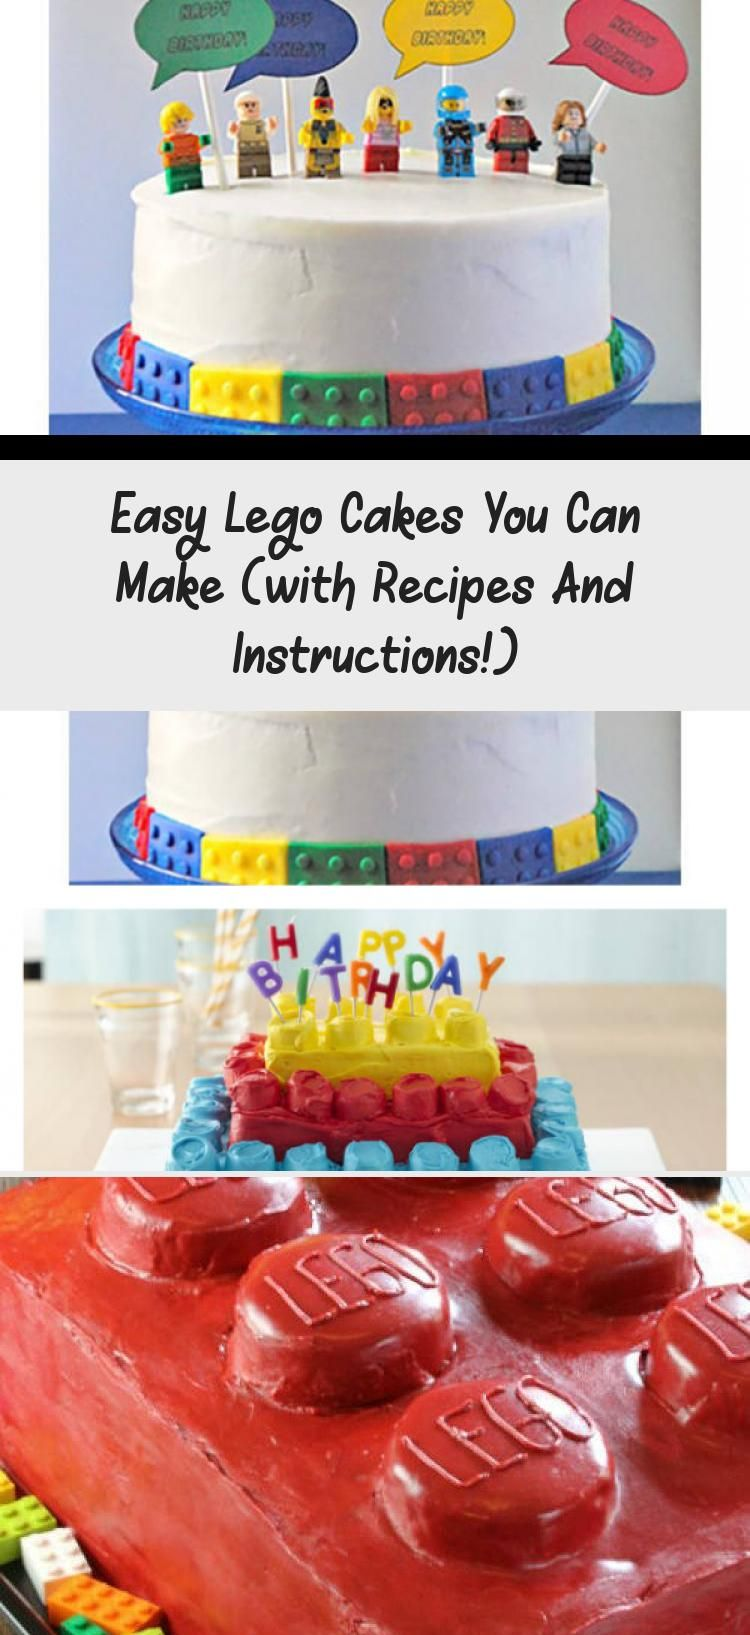 Easy Lego Cakes Ideas You Can Make These With Recipes And